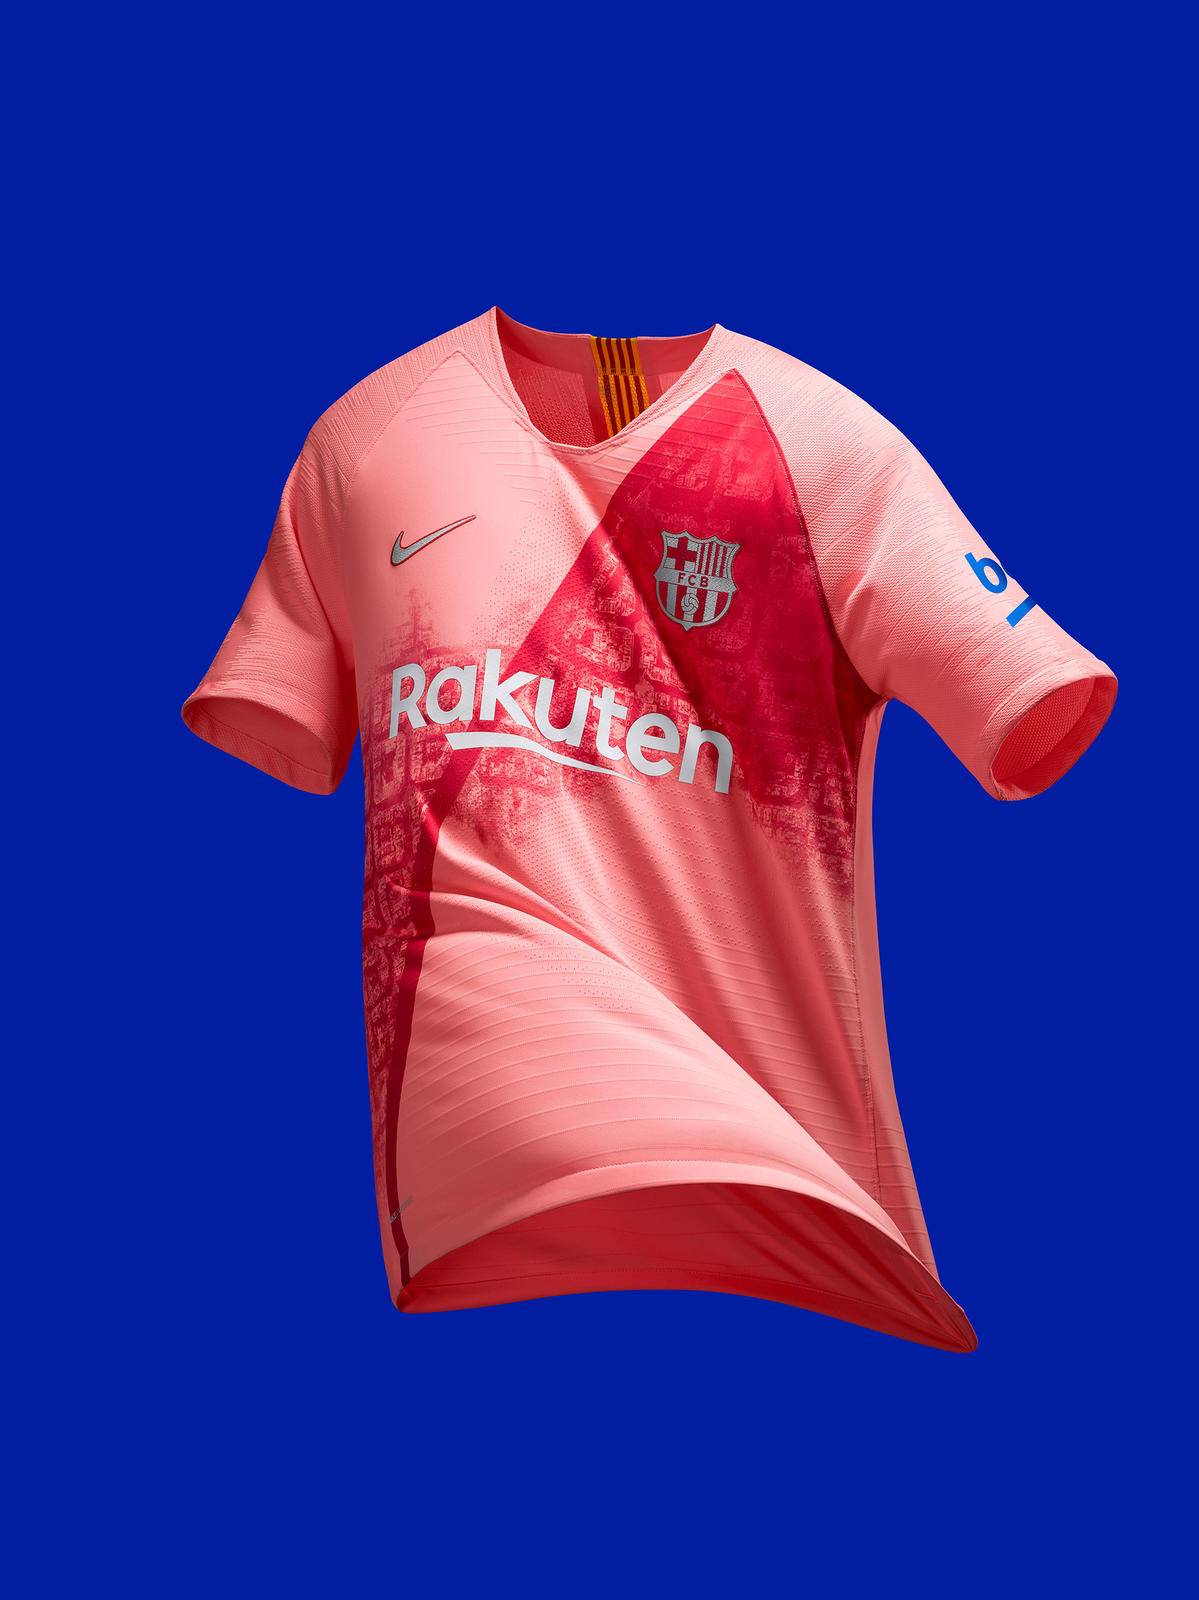 separation shoes 8d6b6 2ee93 FC Barcelona's 2018-19 Third Kit Continues a Bold and ...